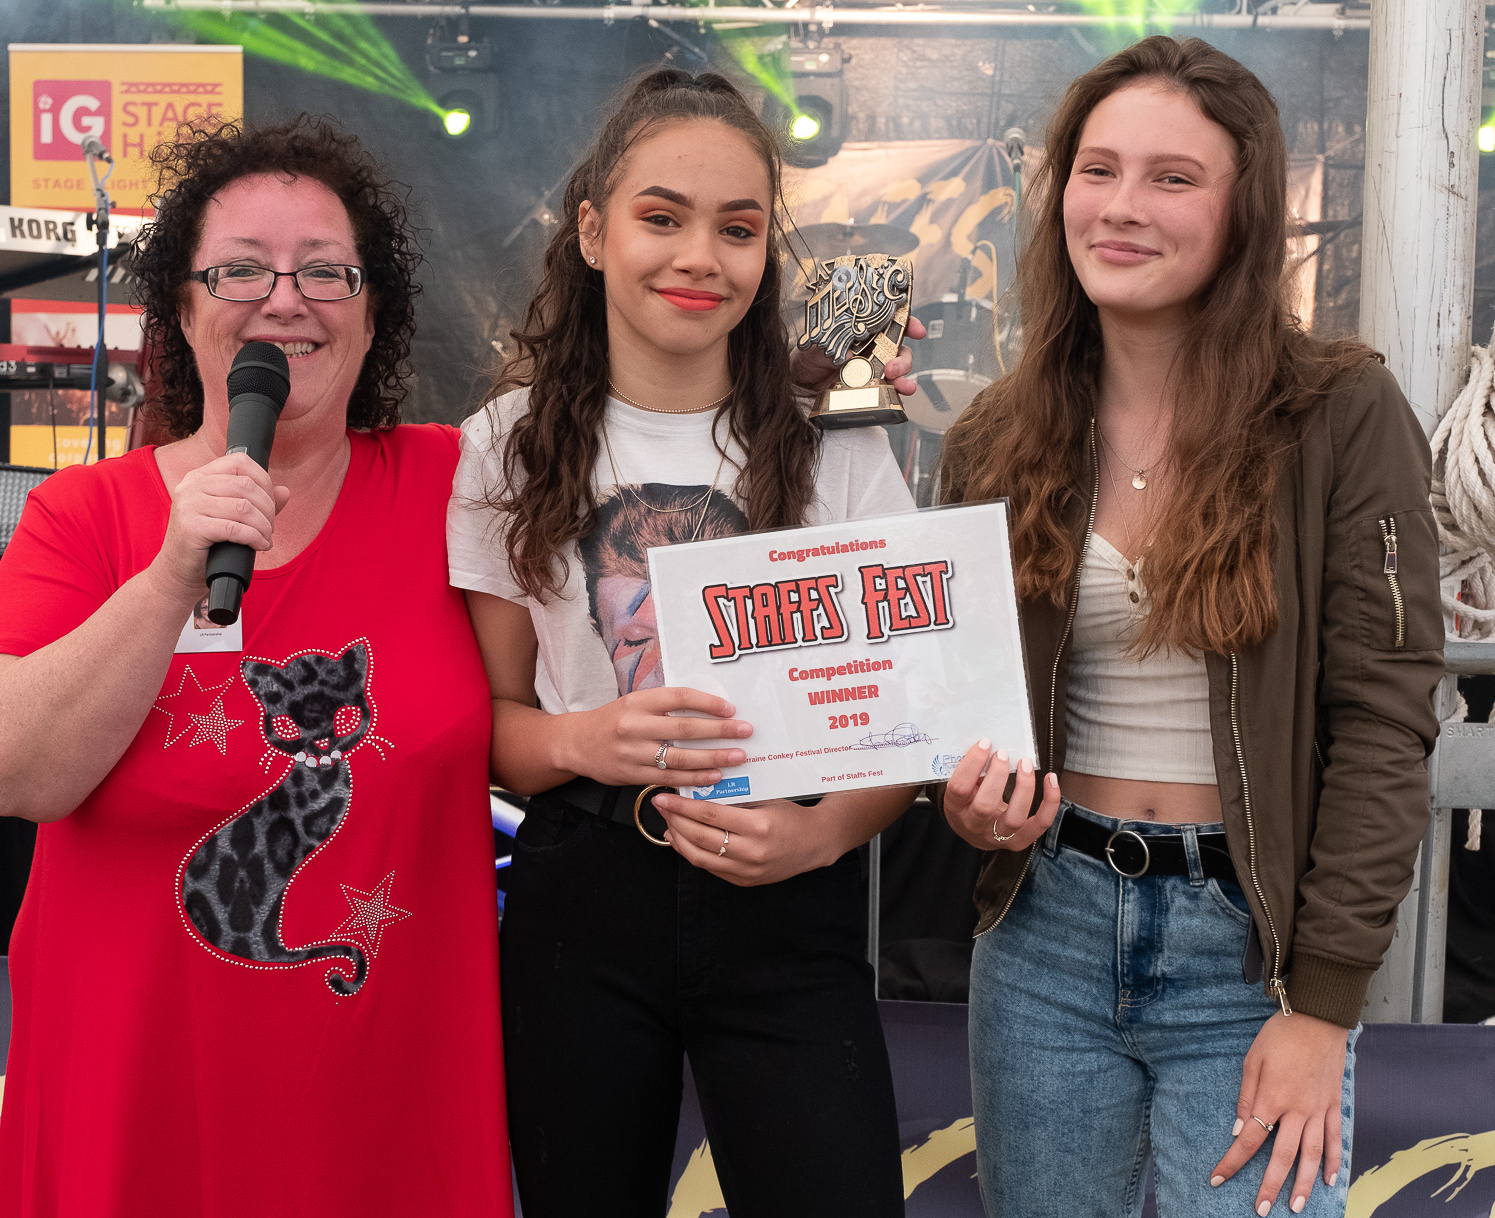 Star-In-Staffs-Winners-Ruby-Johnson-and-Georgie-Sullivan-Lorraine-Conkey